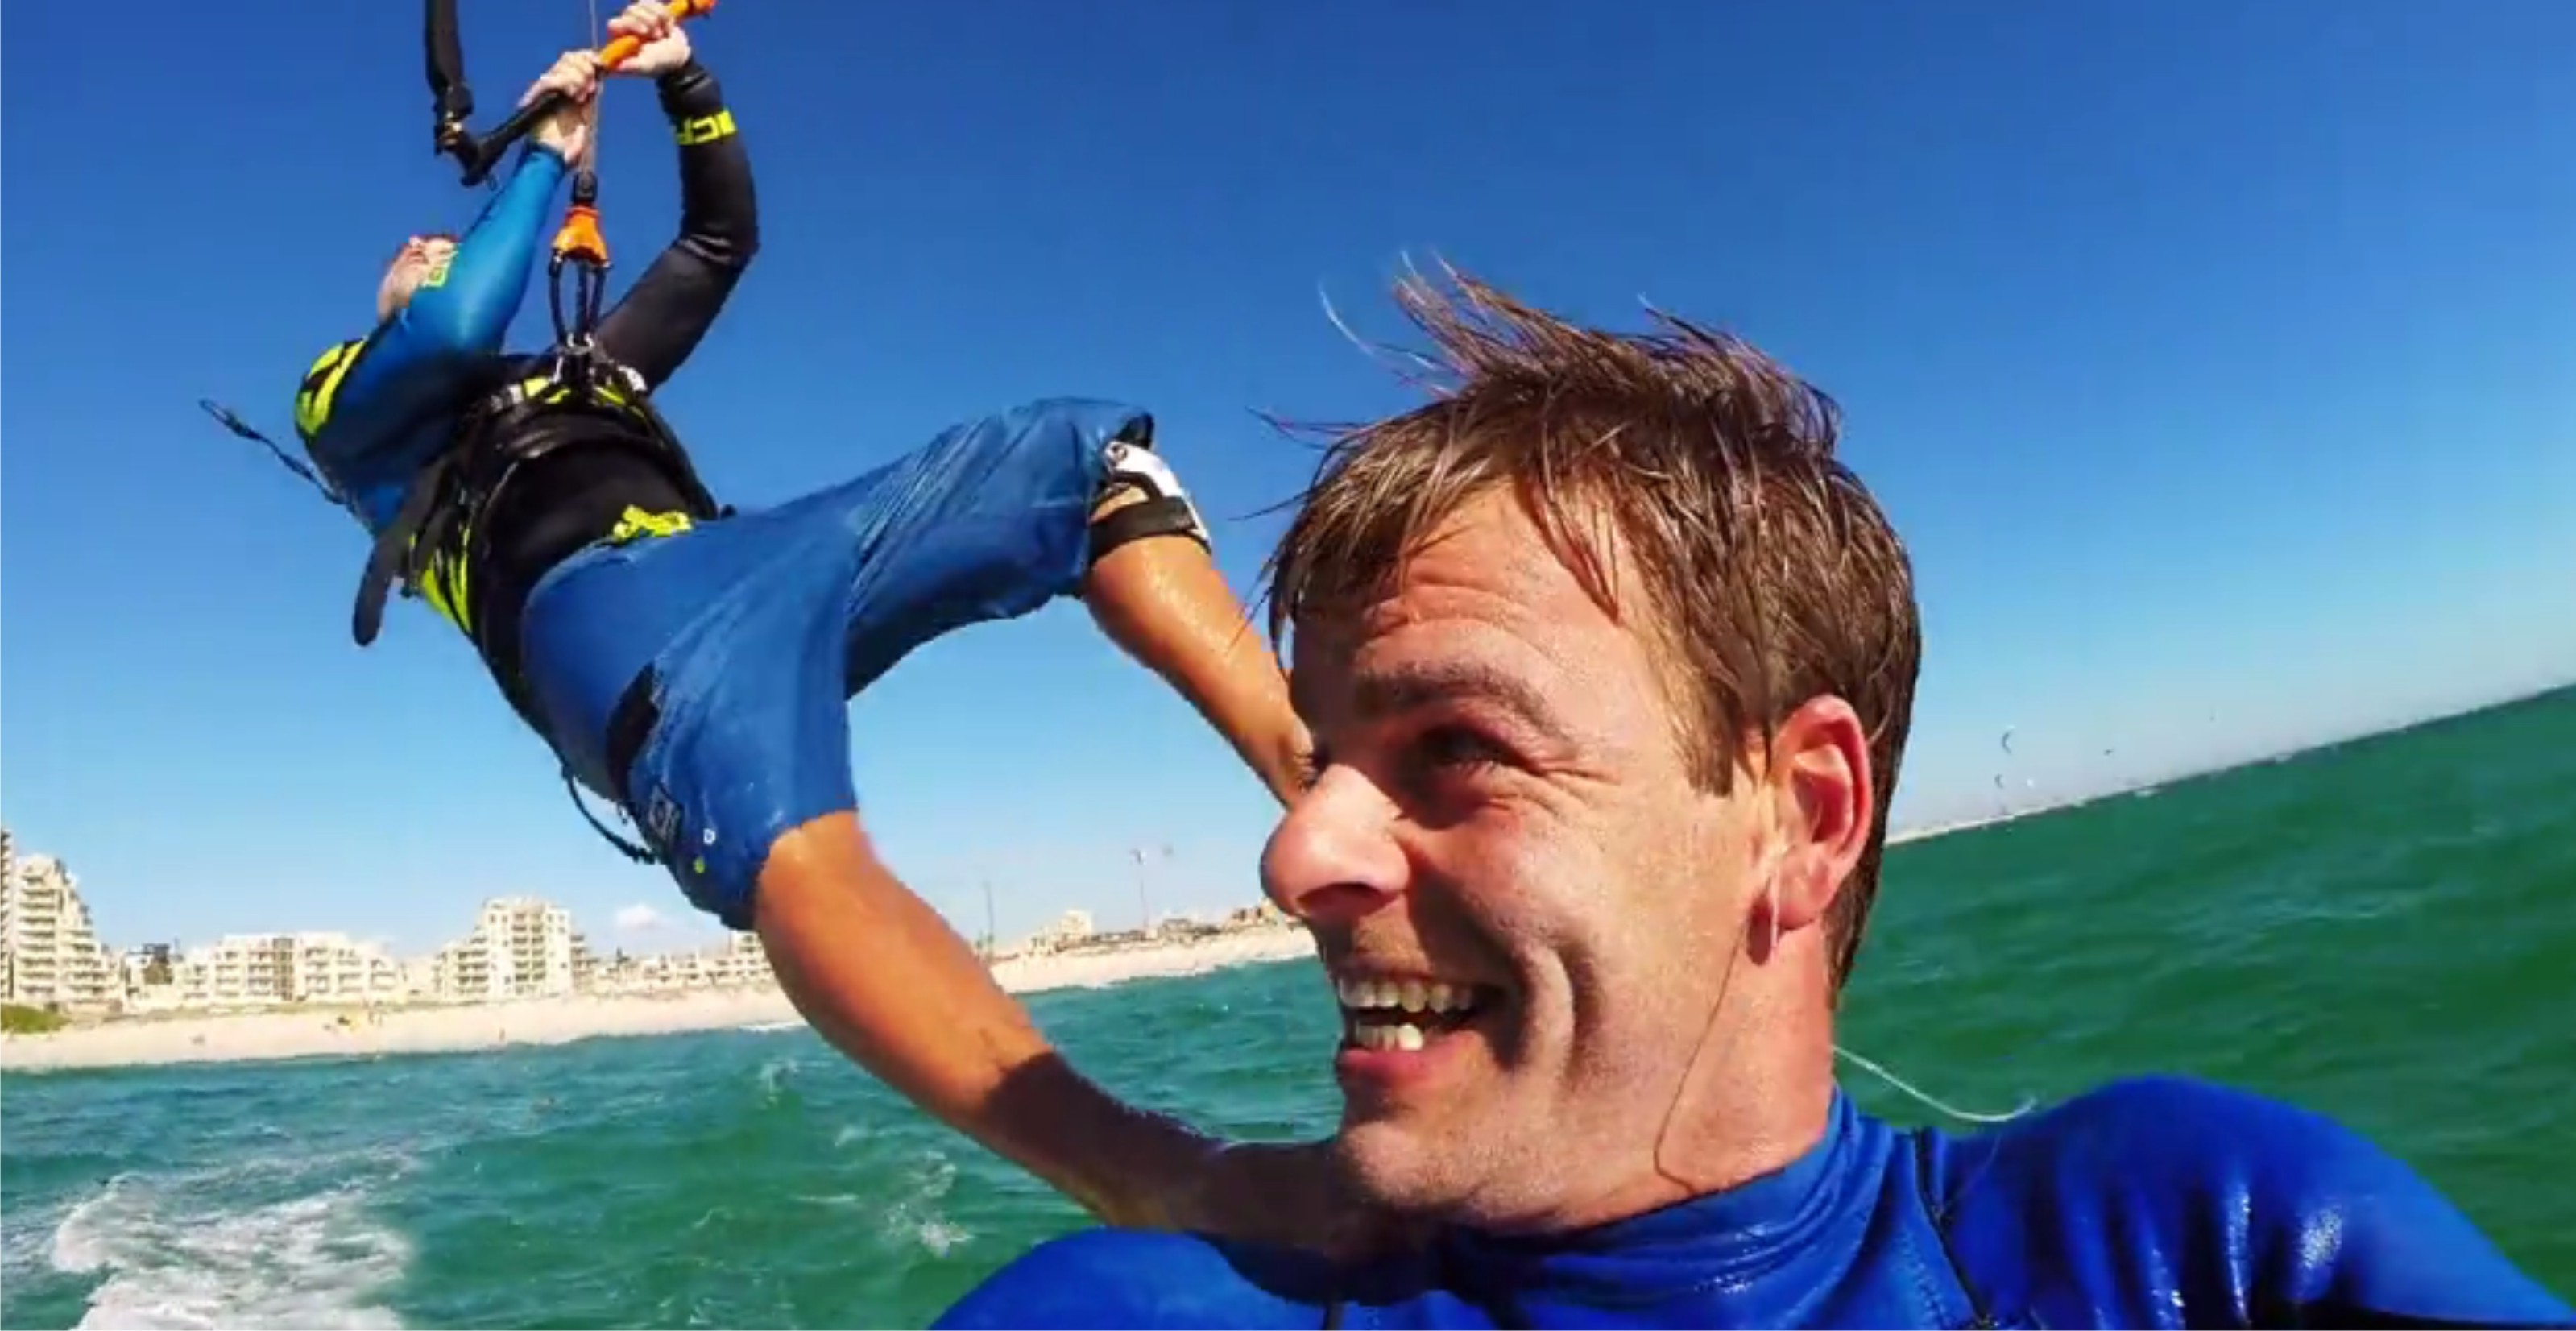 Kiteboarding behind the scenes with the 2015 Red Bull King of the Air athletes